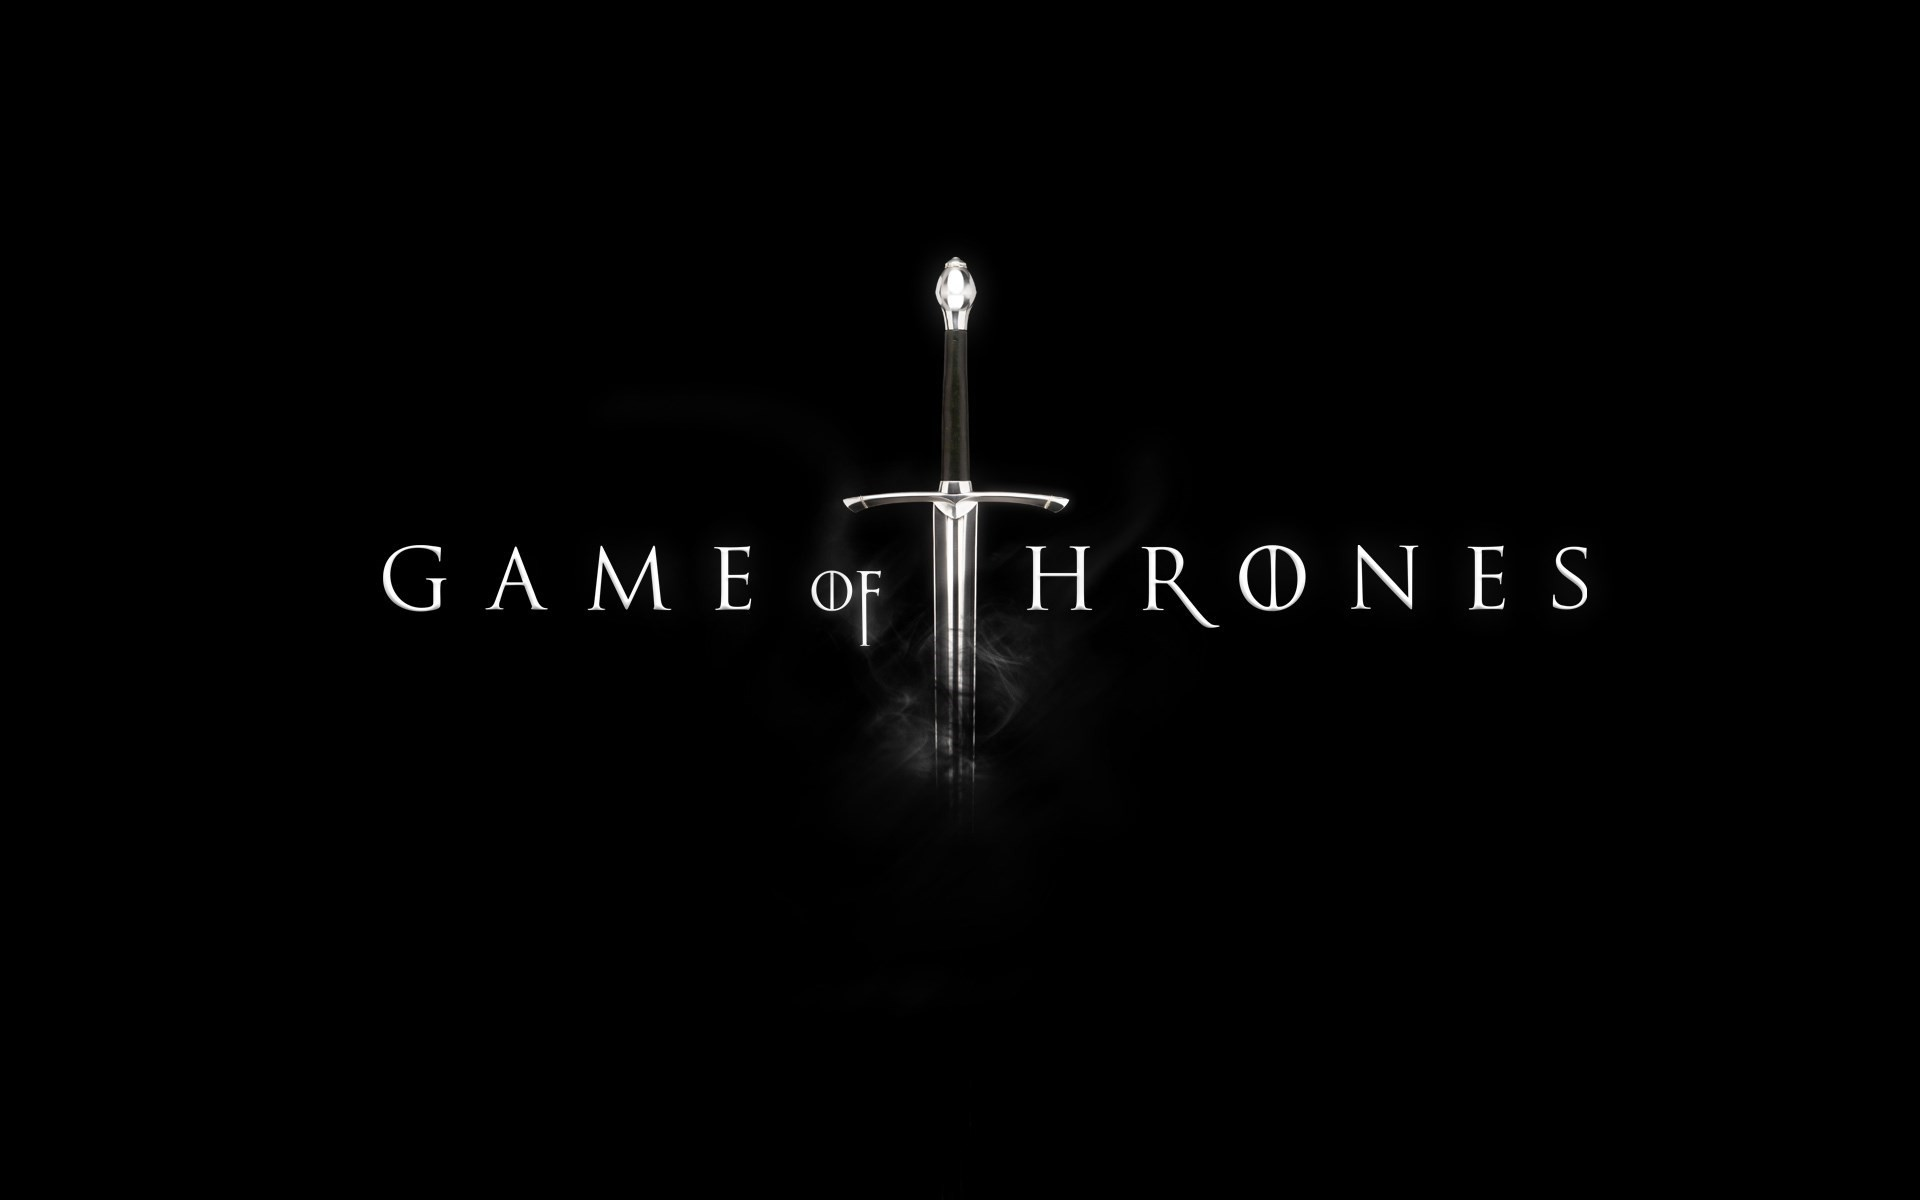 1920x1080 Game Of Thrones Simple Laptop Full HD 1080P HD